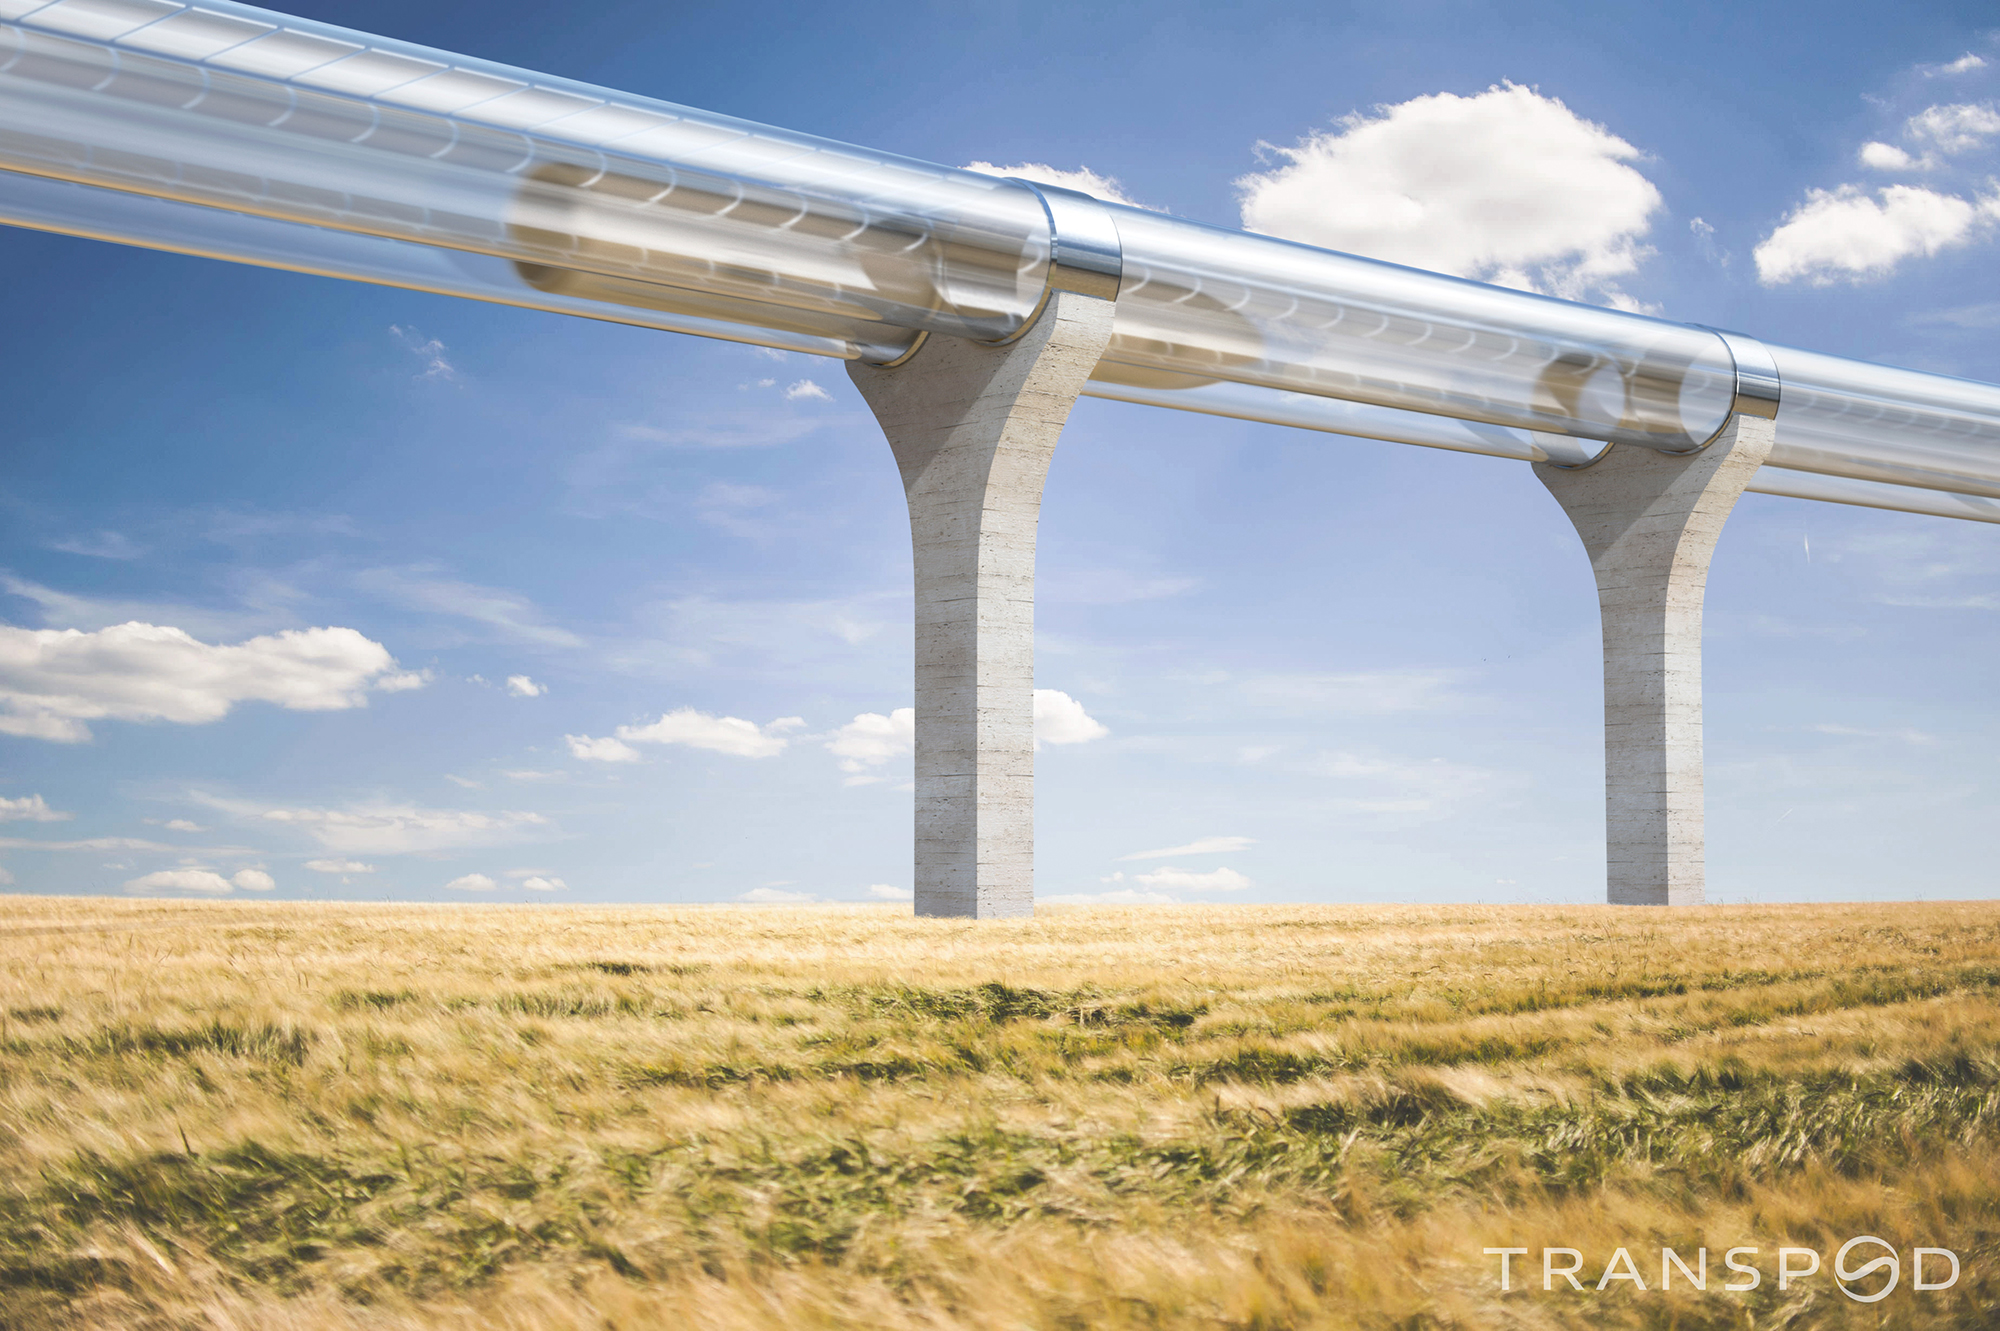 transpod hyperloop